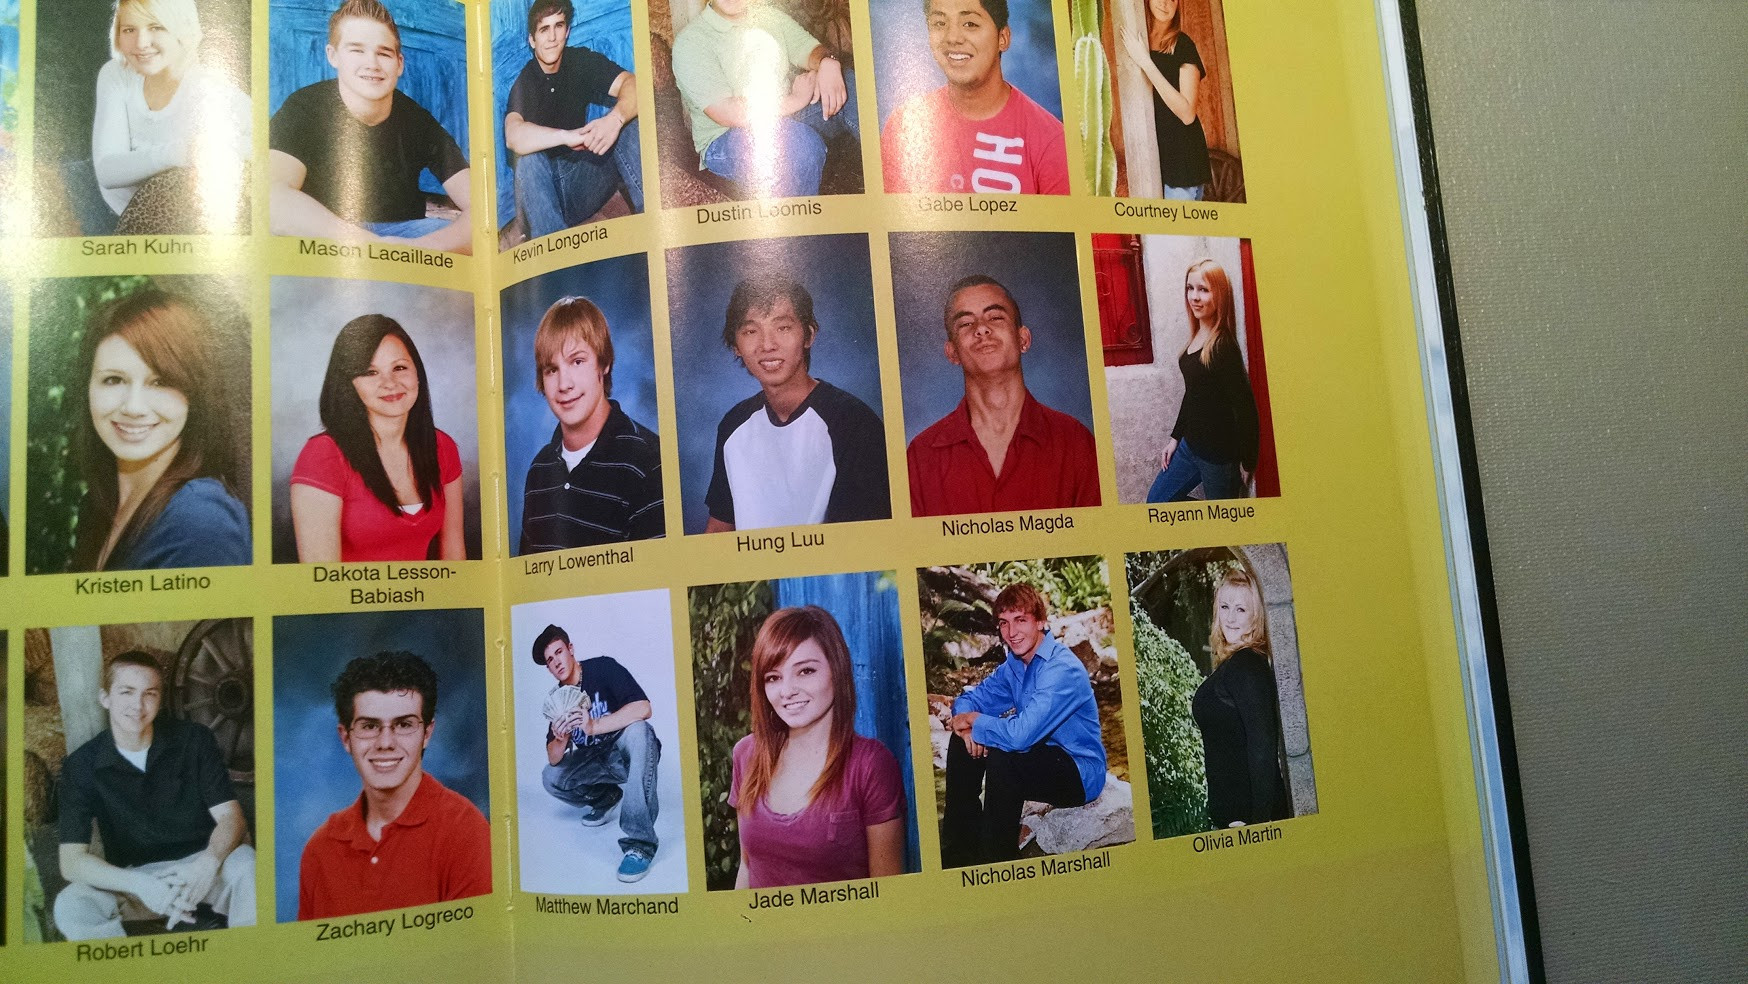 Actual yearbook